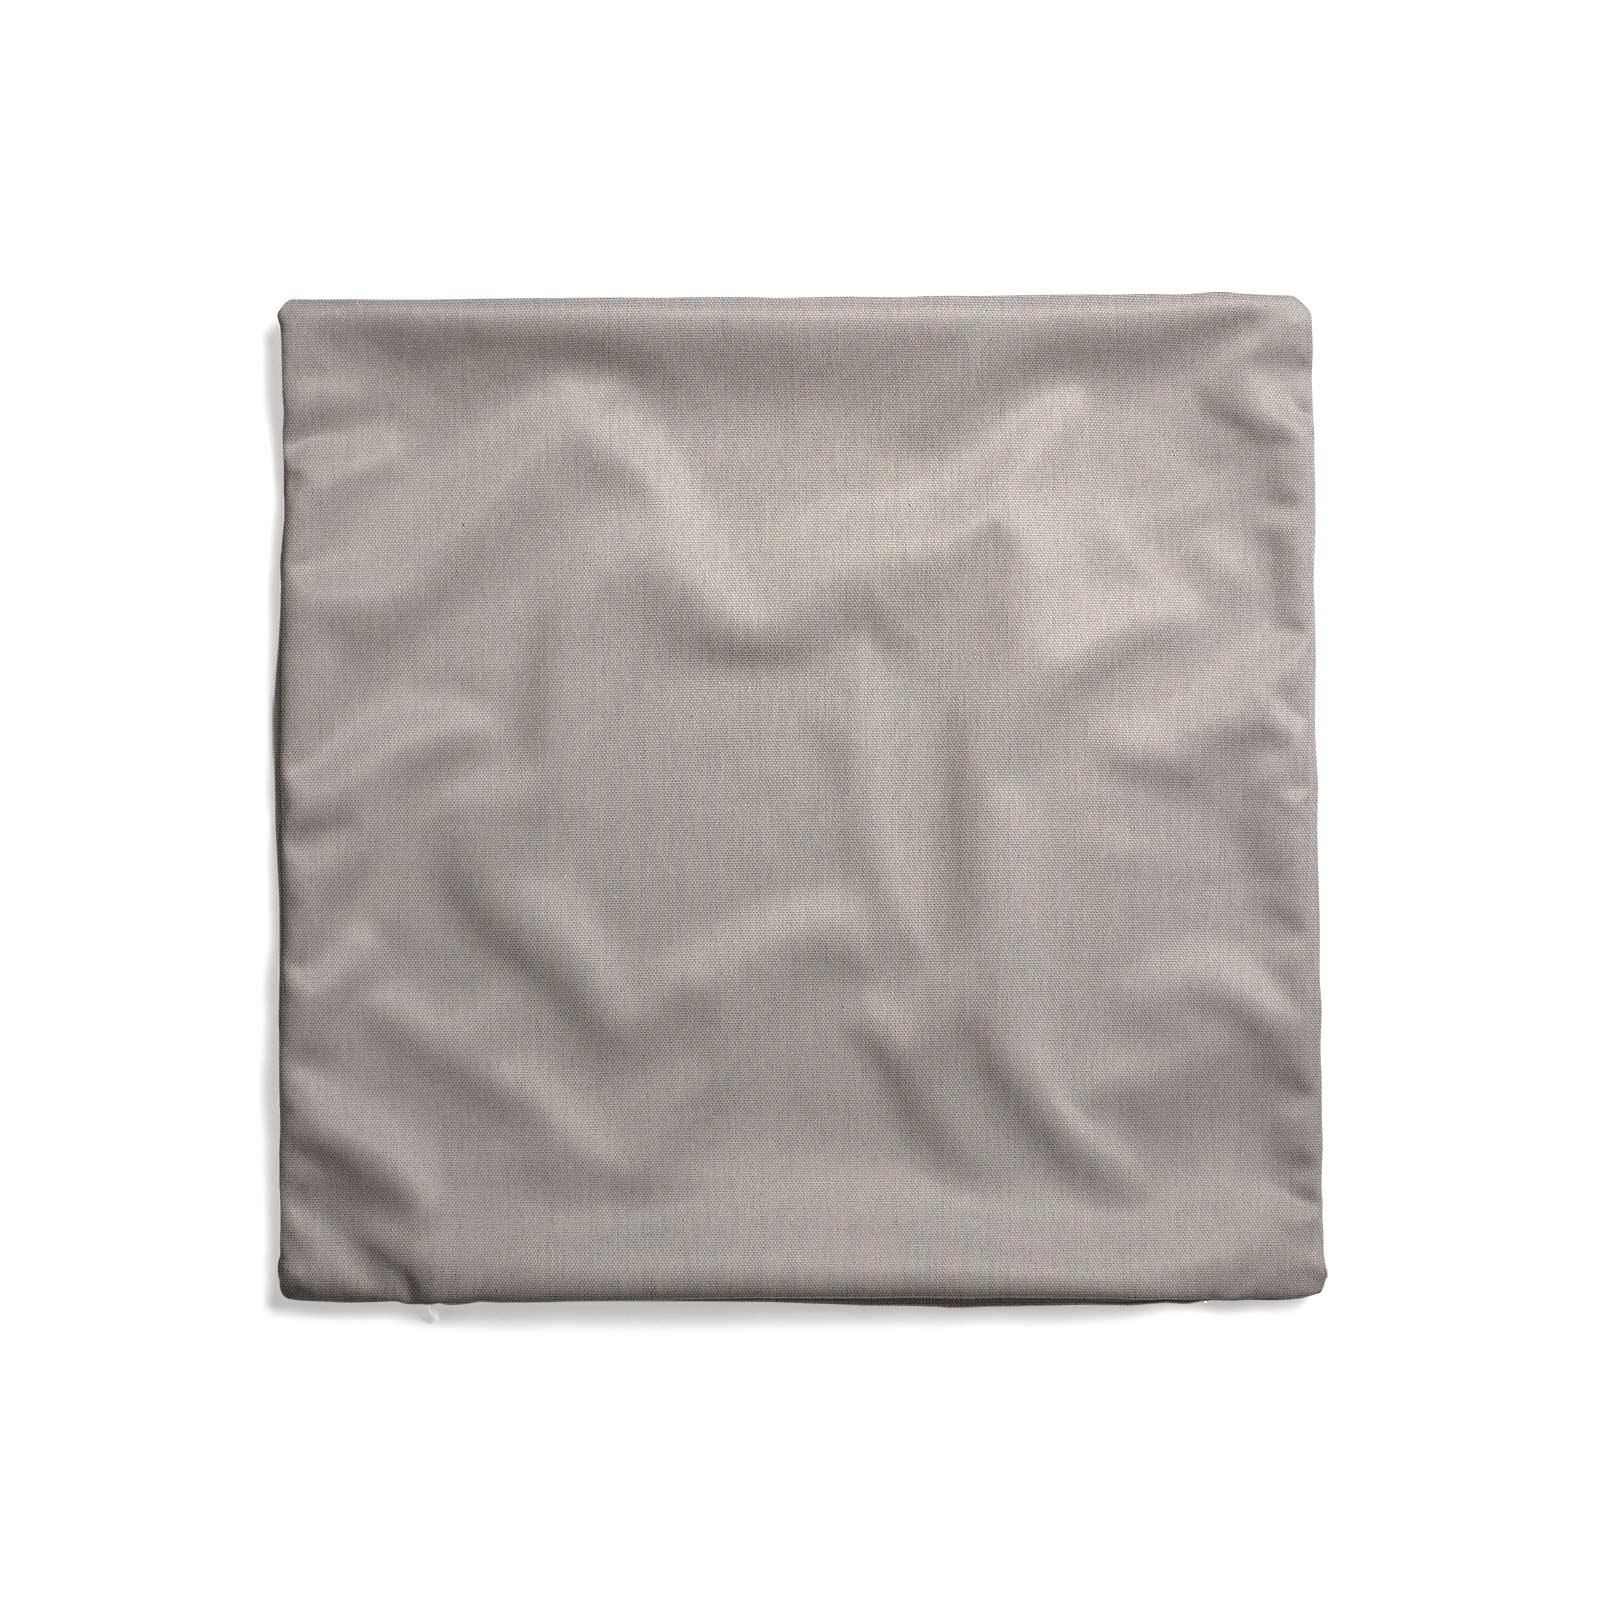 Grey-Ochre-Mustard-Cushion-Cover-Collection-17-034-18-034-Covers-Filled-Cushions thumbnail 64